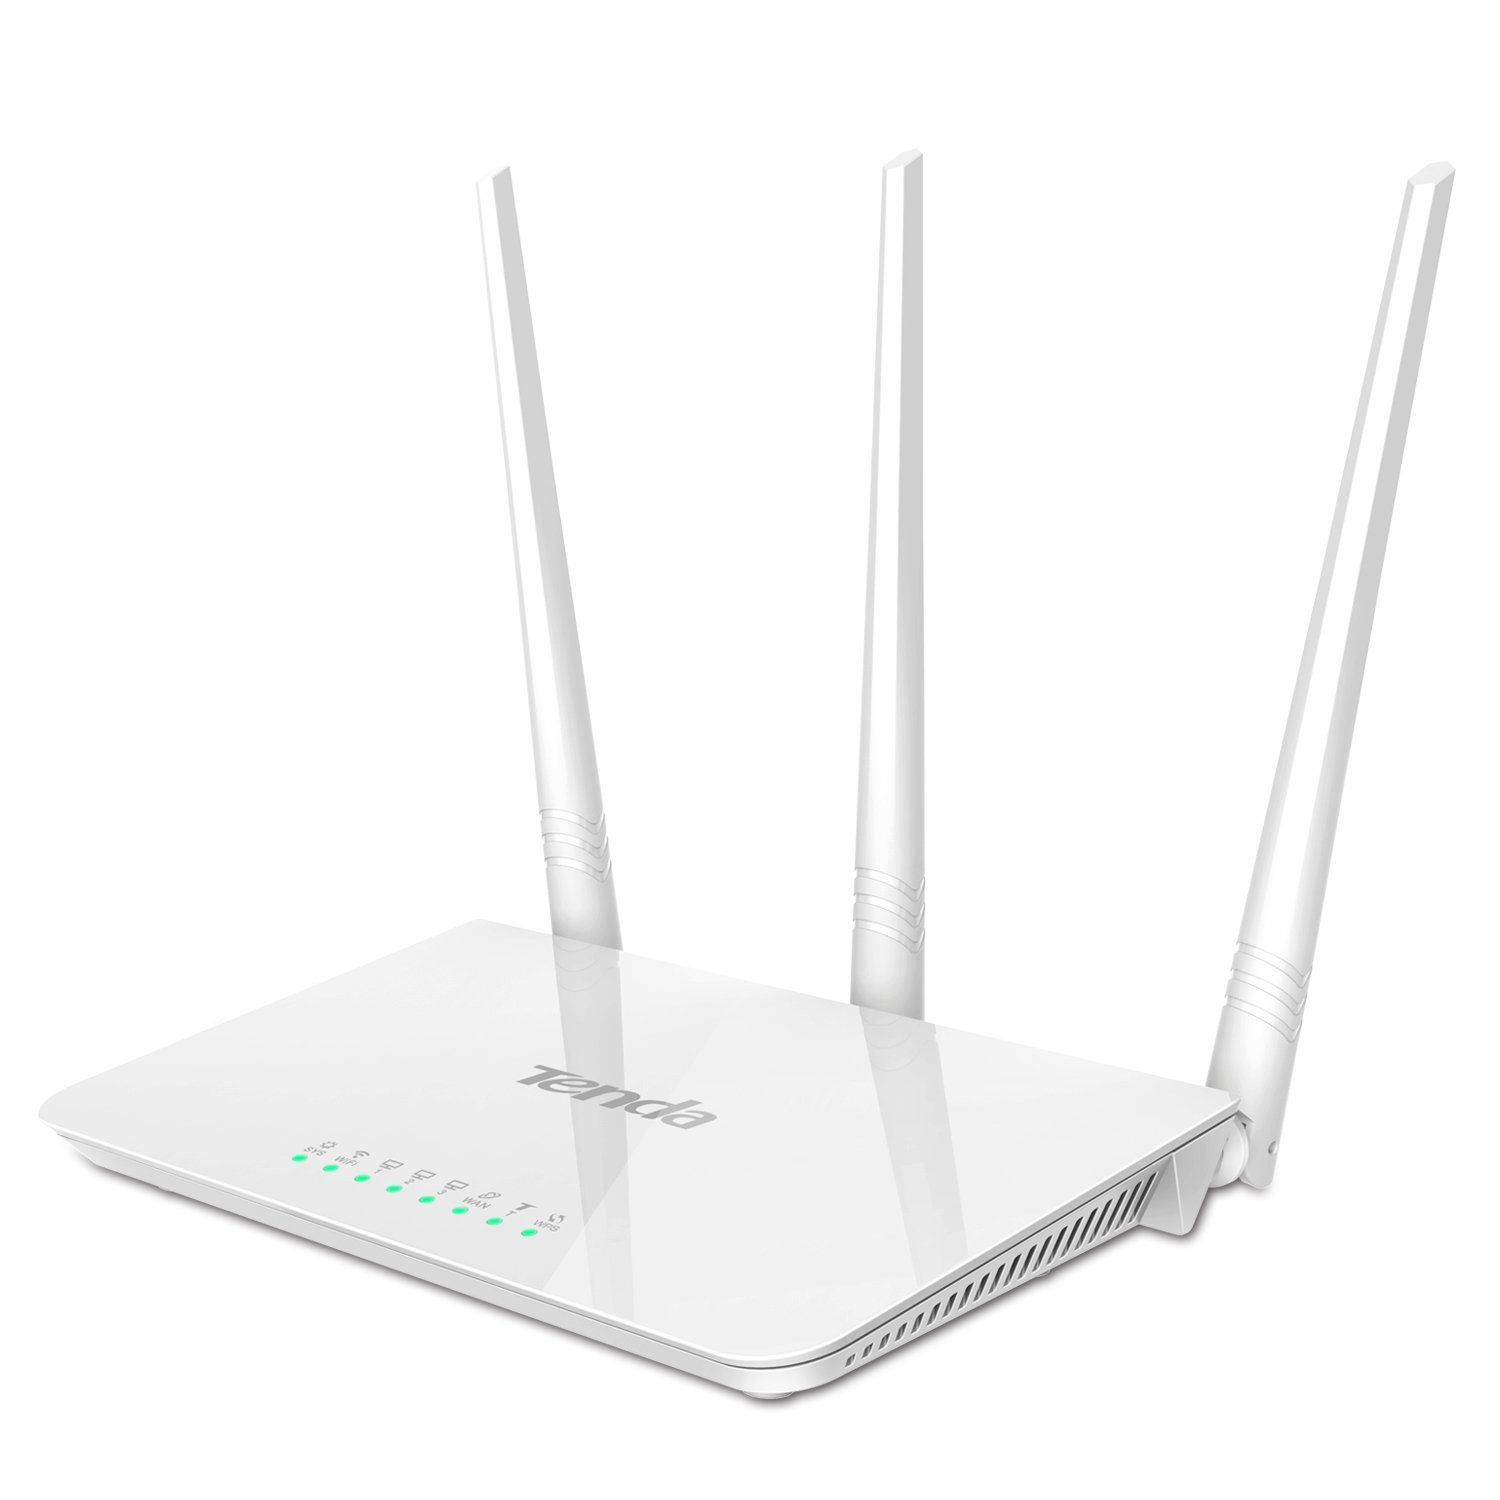 Tenda F3 300Mbps Wi-Fi Router for Rs 899 (27% off)